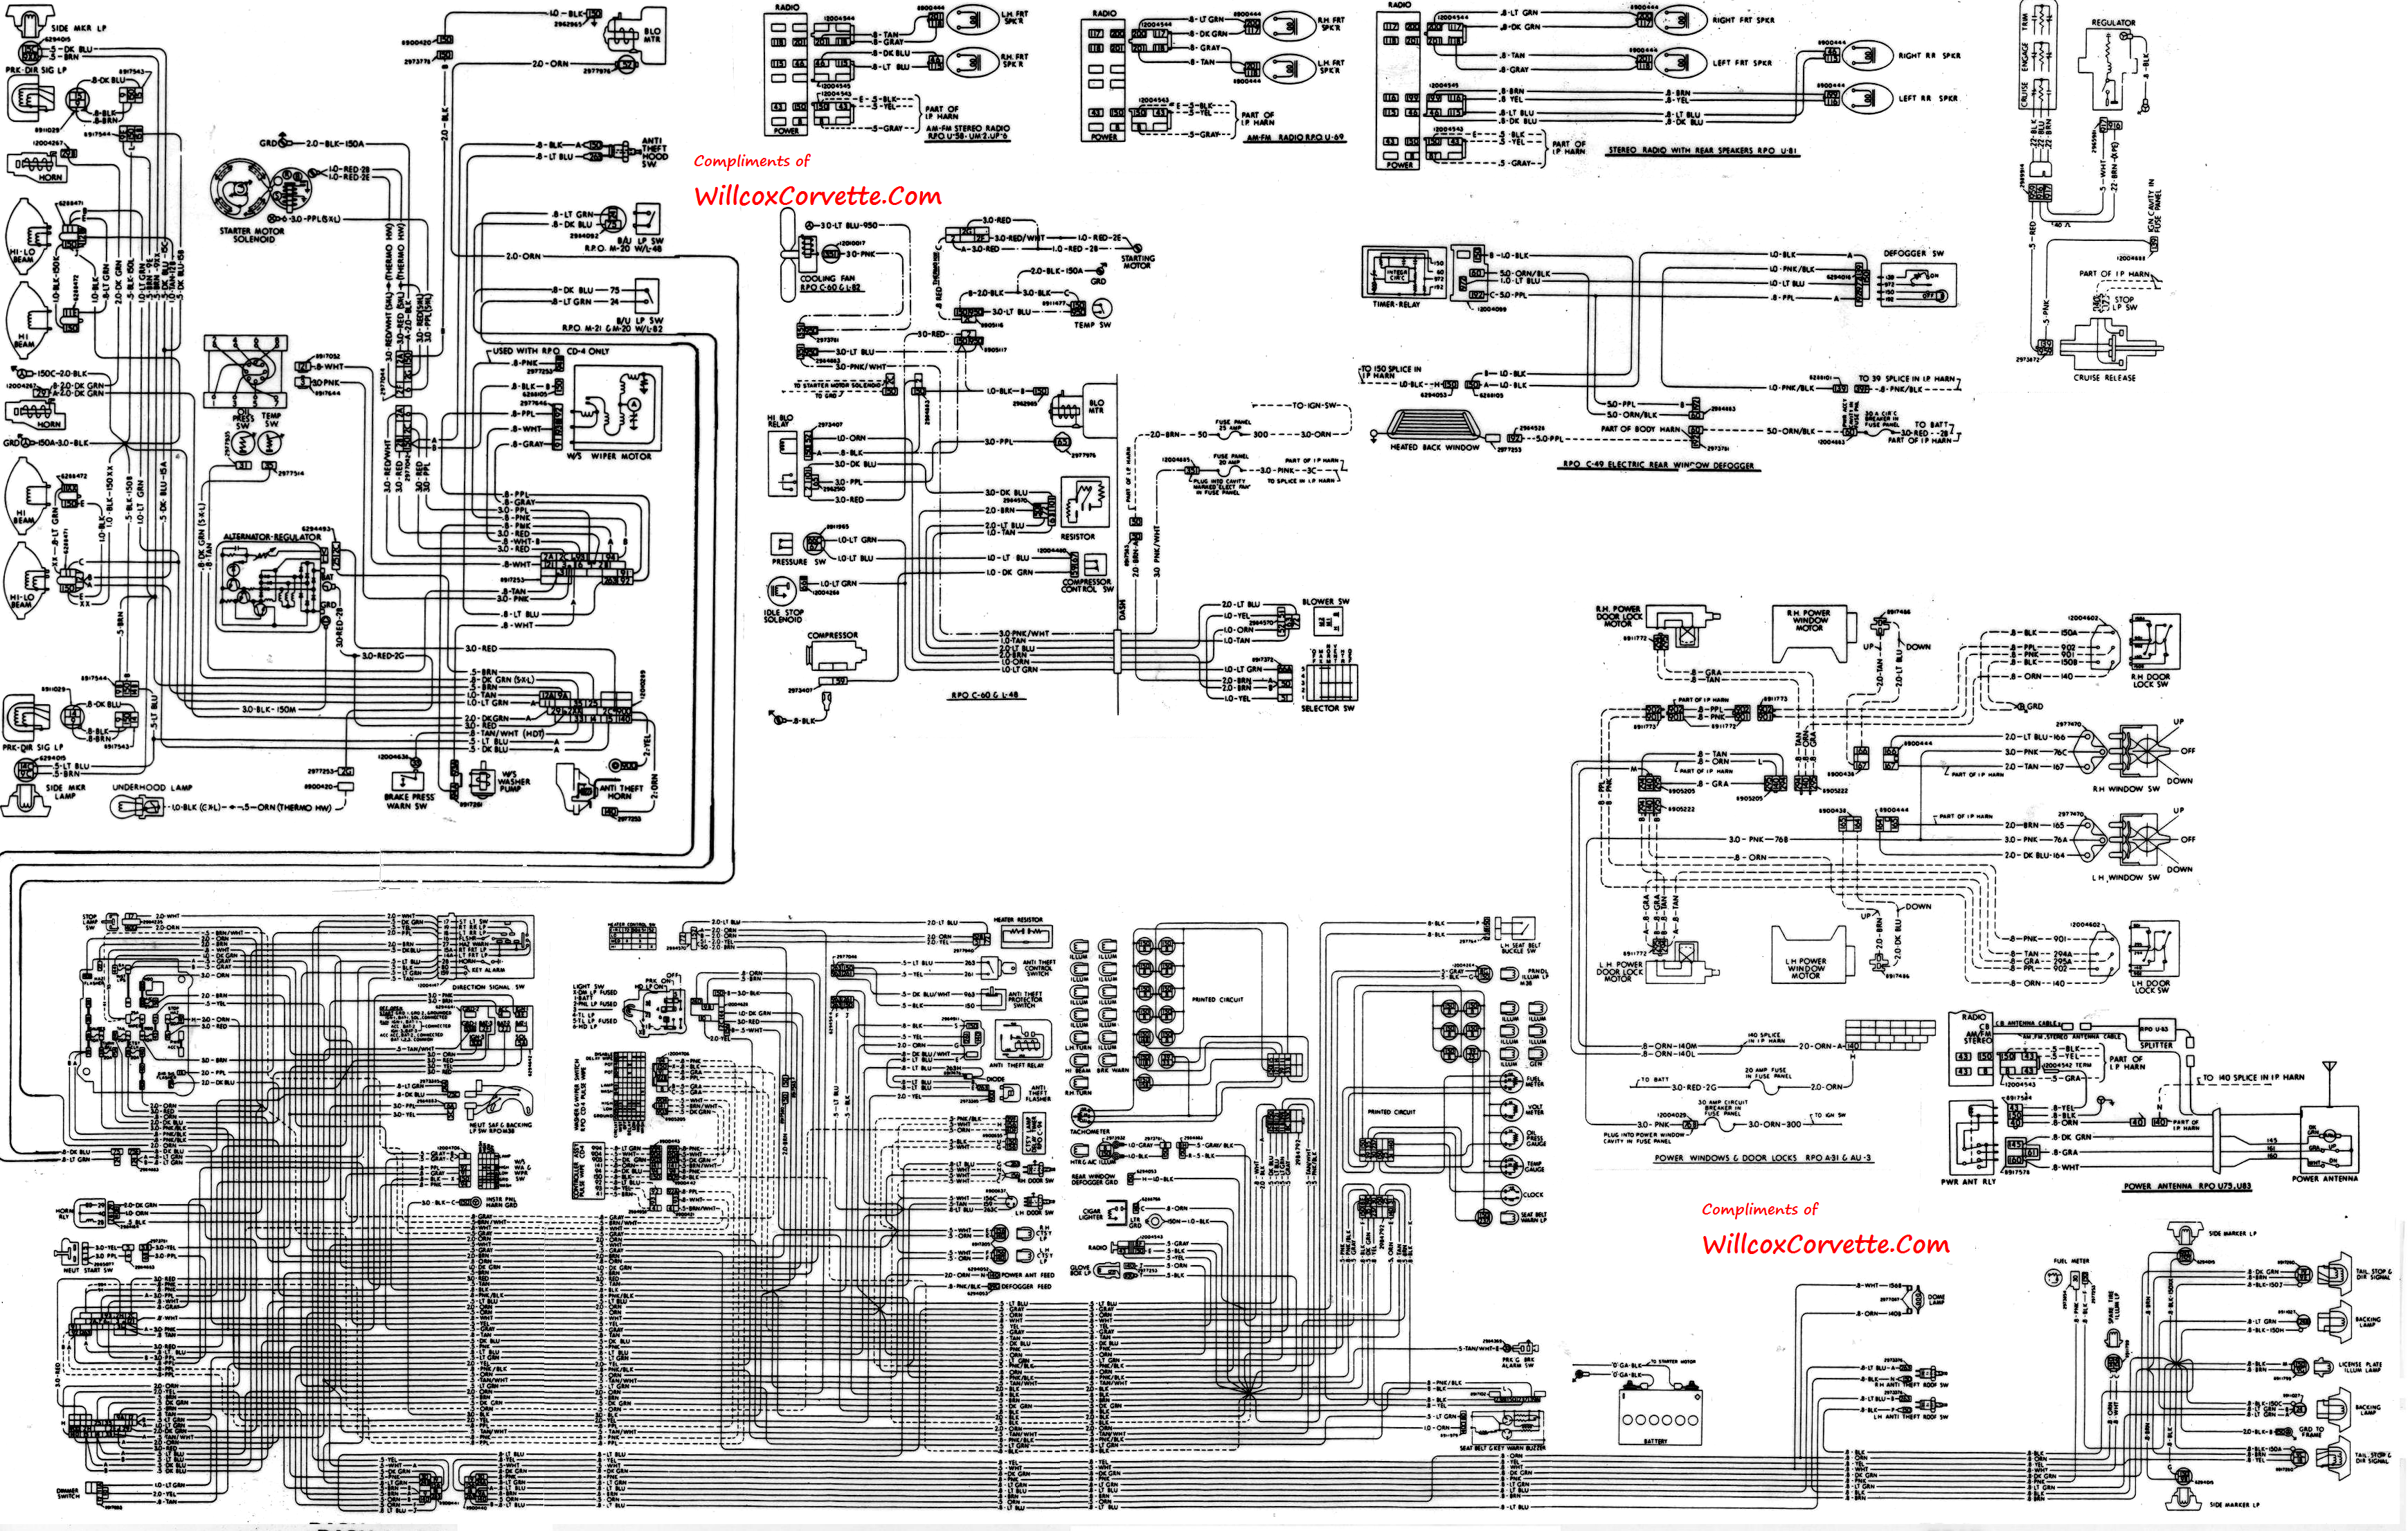 1979 wire diagram corvette wiring diagrams free 1980 corvette wiring diagram 84 300Zx Wiring-Diagram at nearapp.co